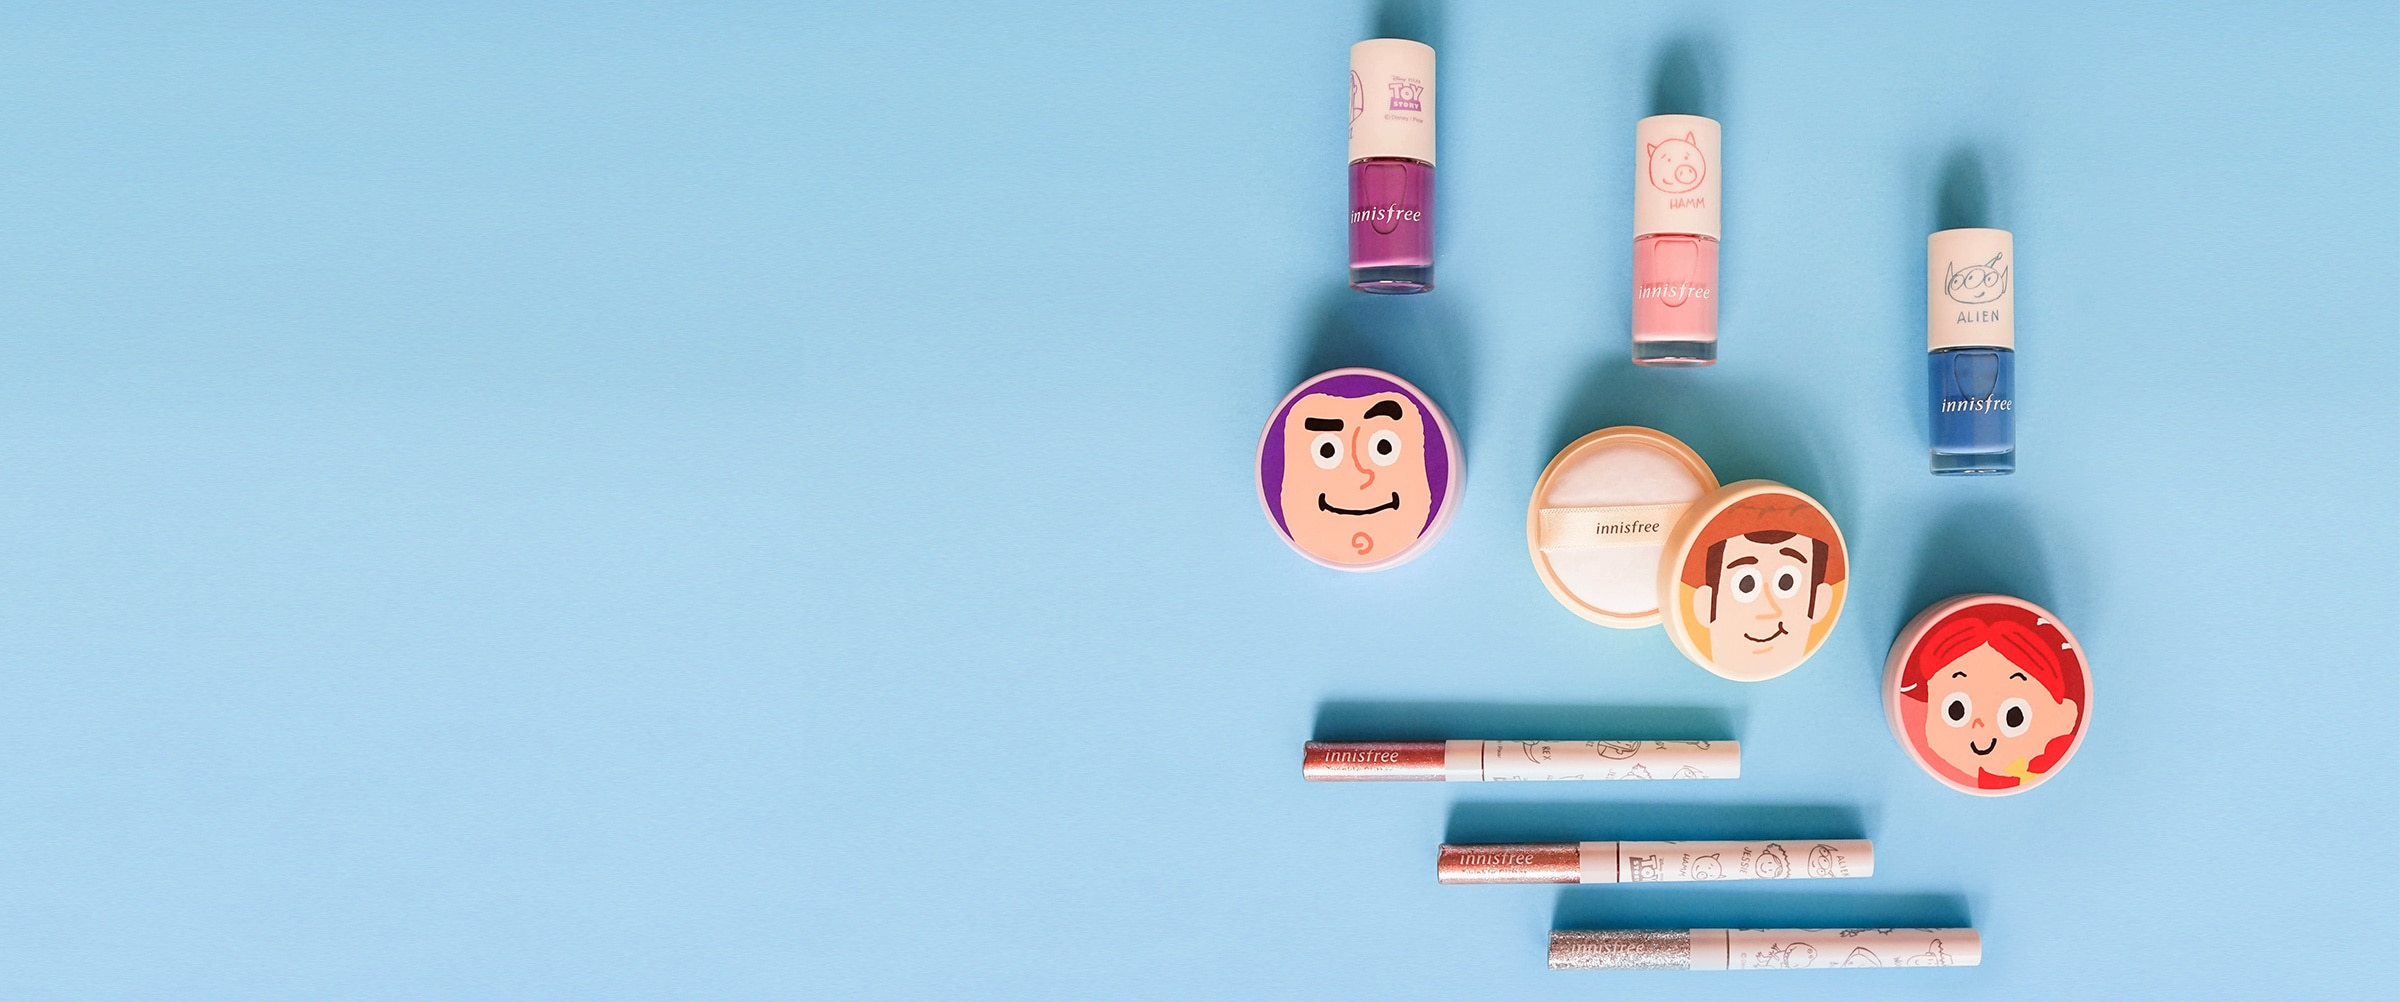 Shop | Shop Landing | Hero | Innisfree Toy Story Collection